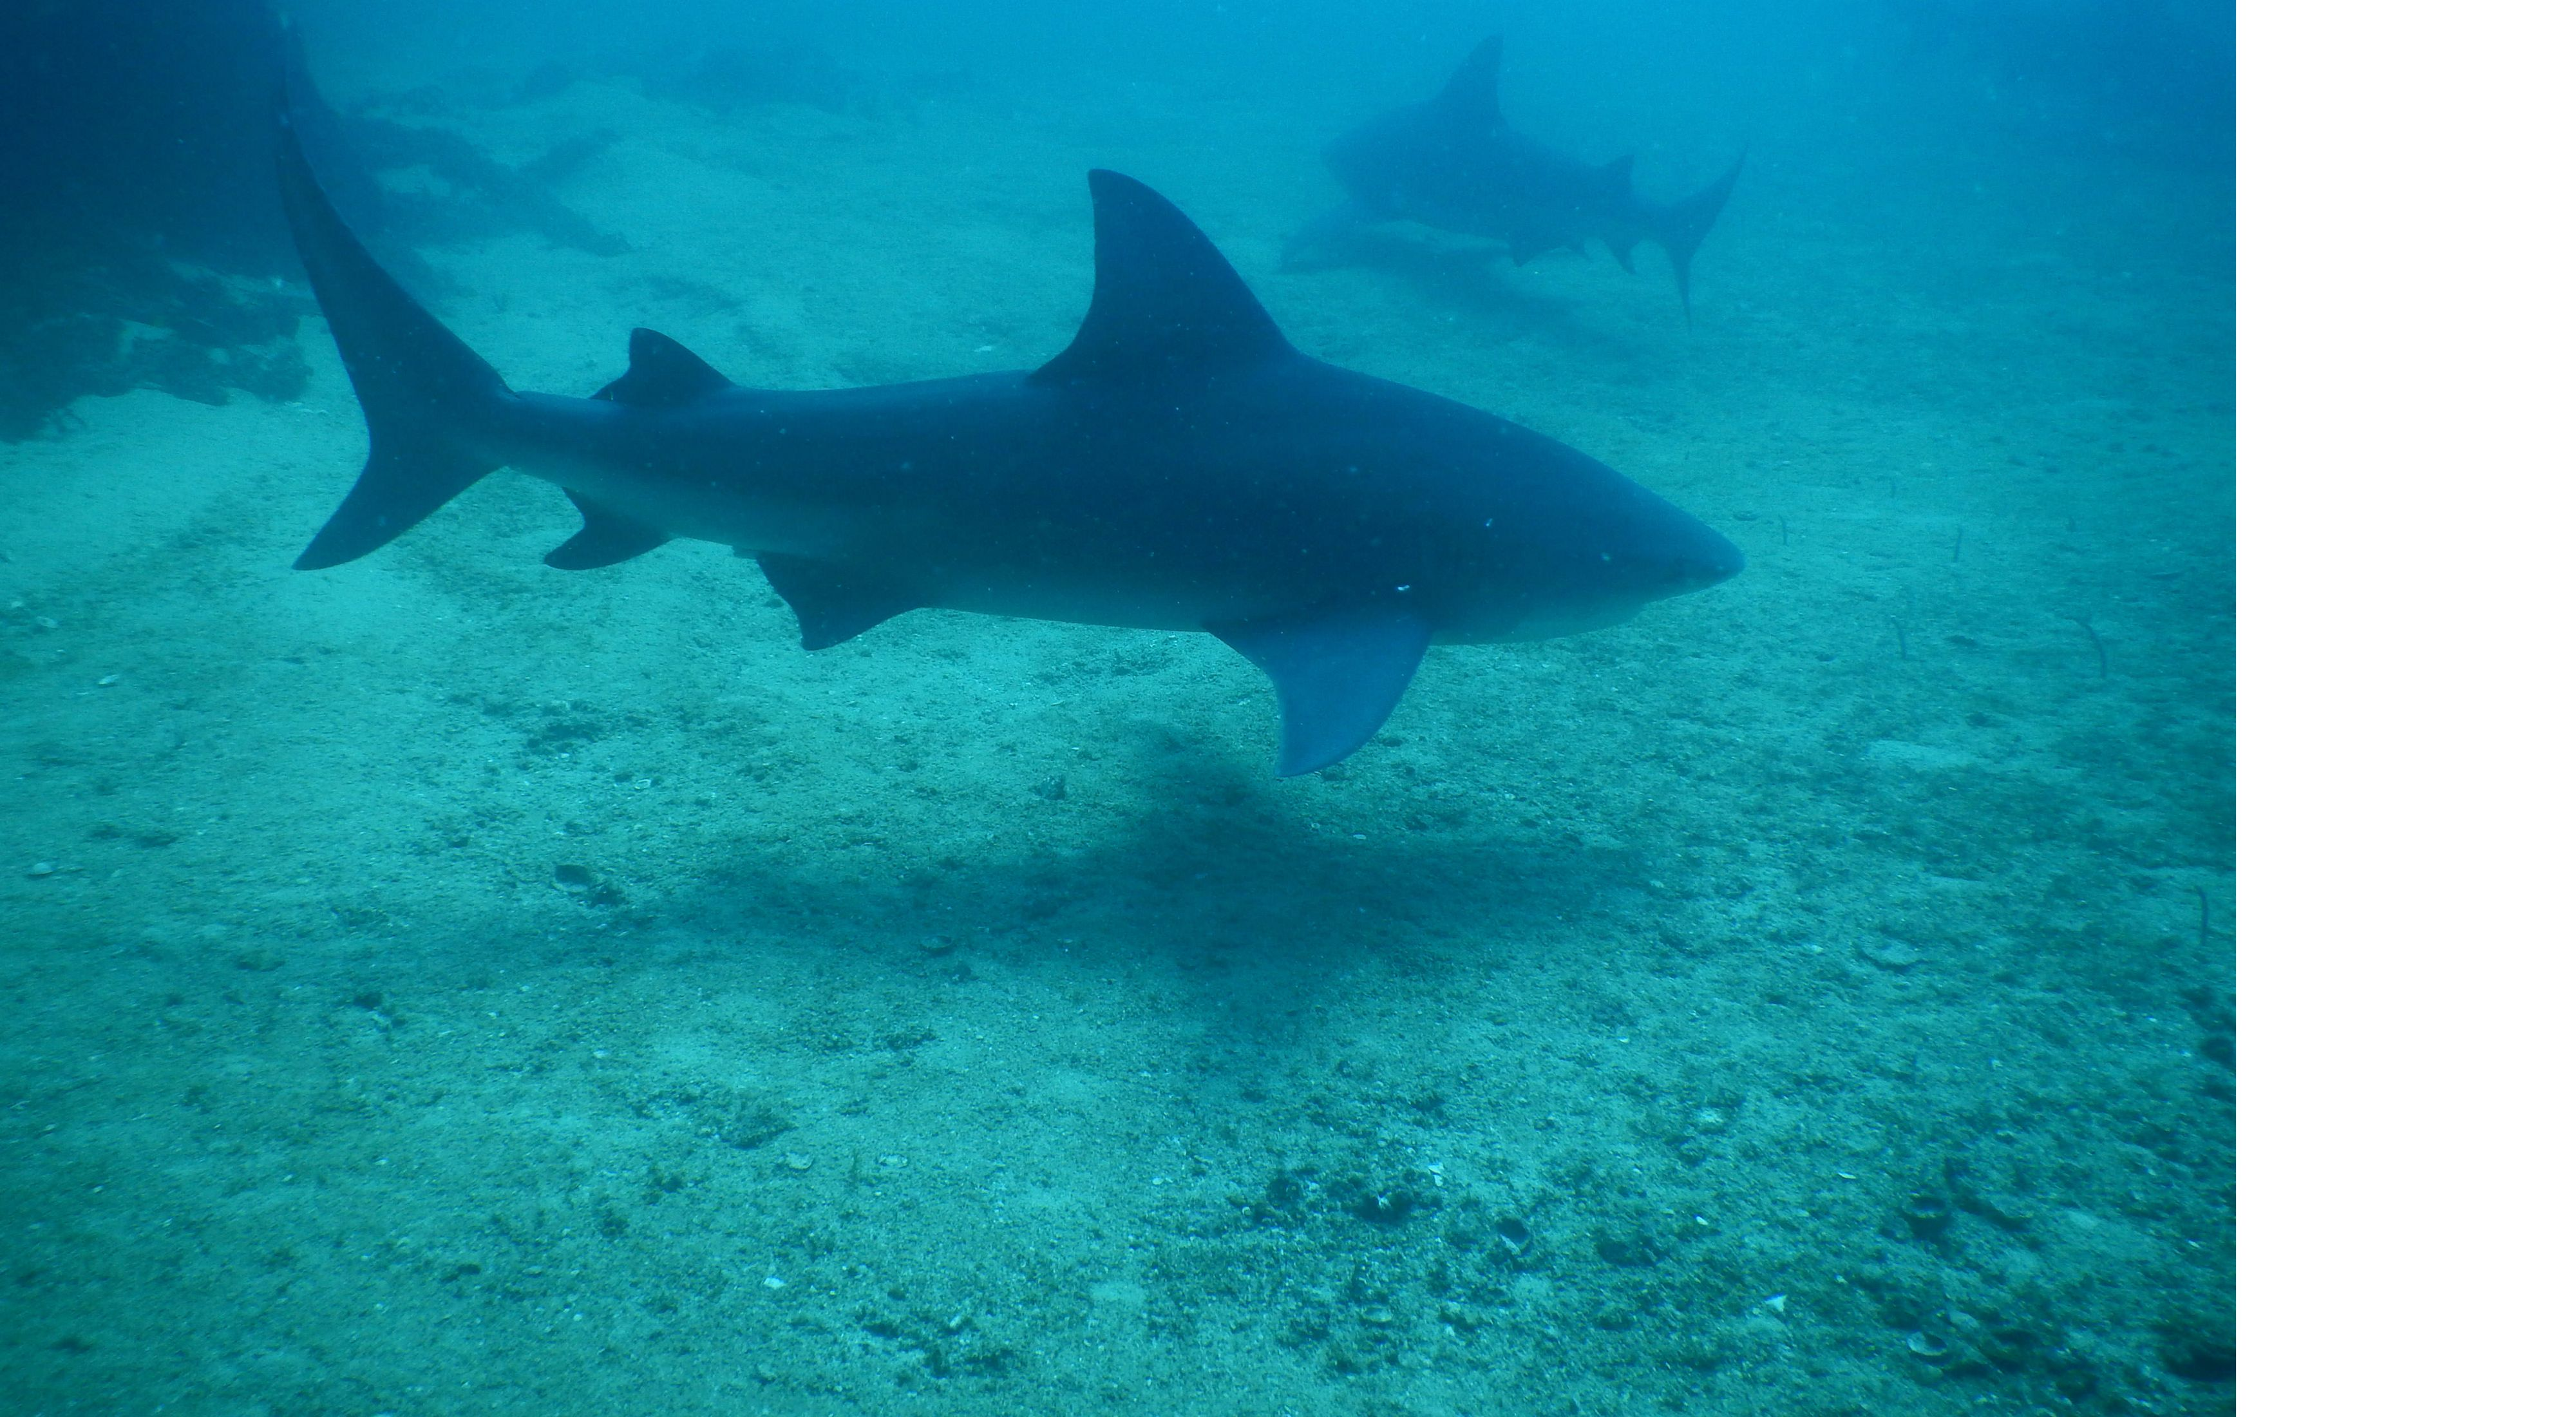 profile view of a shark in foggy blue waters